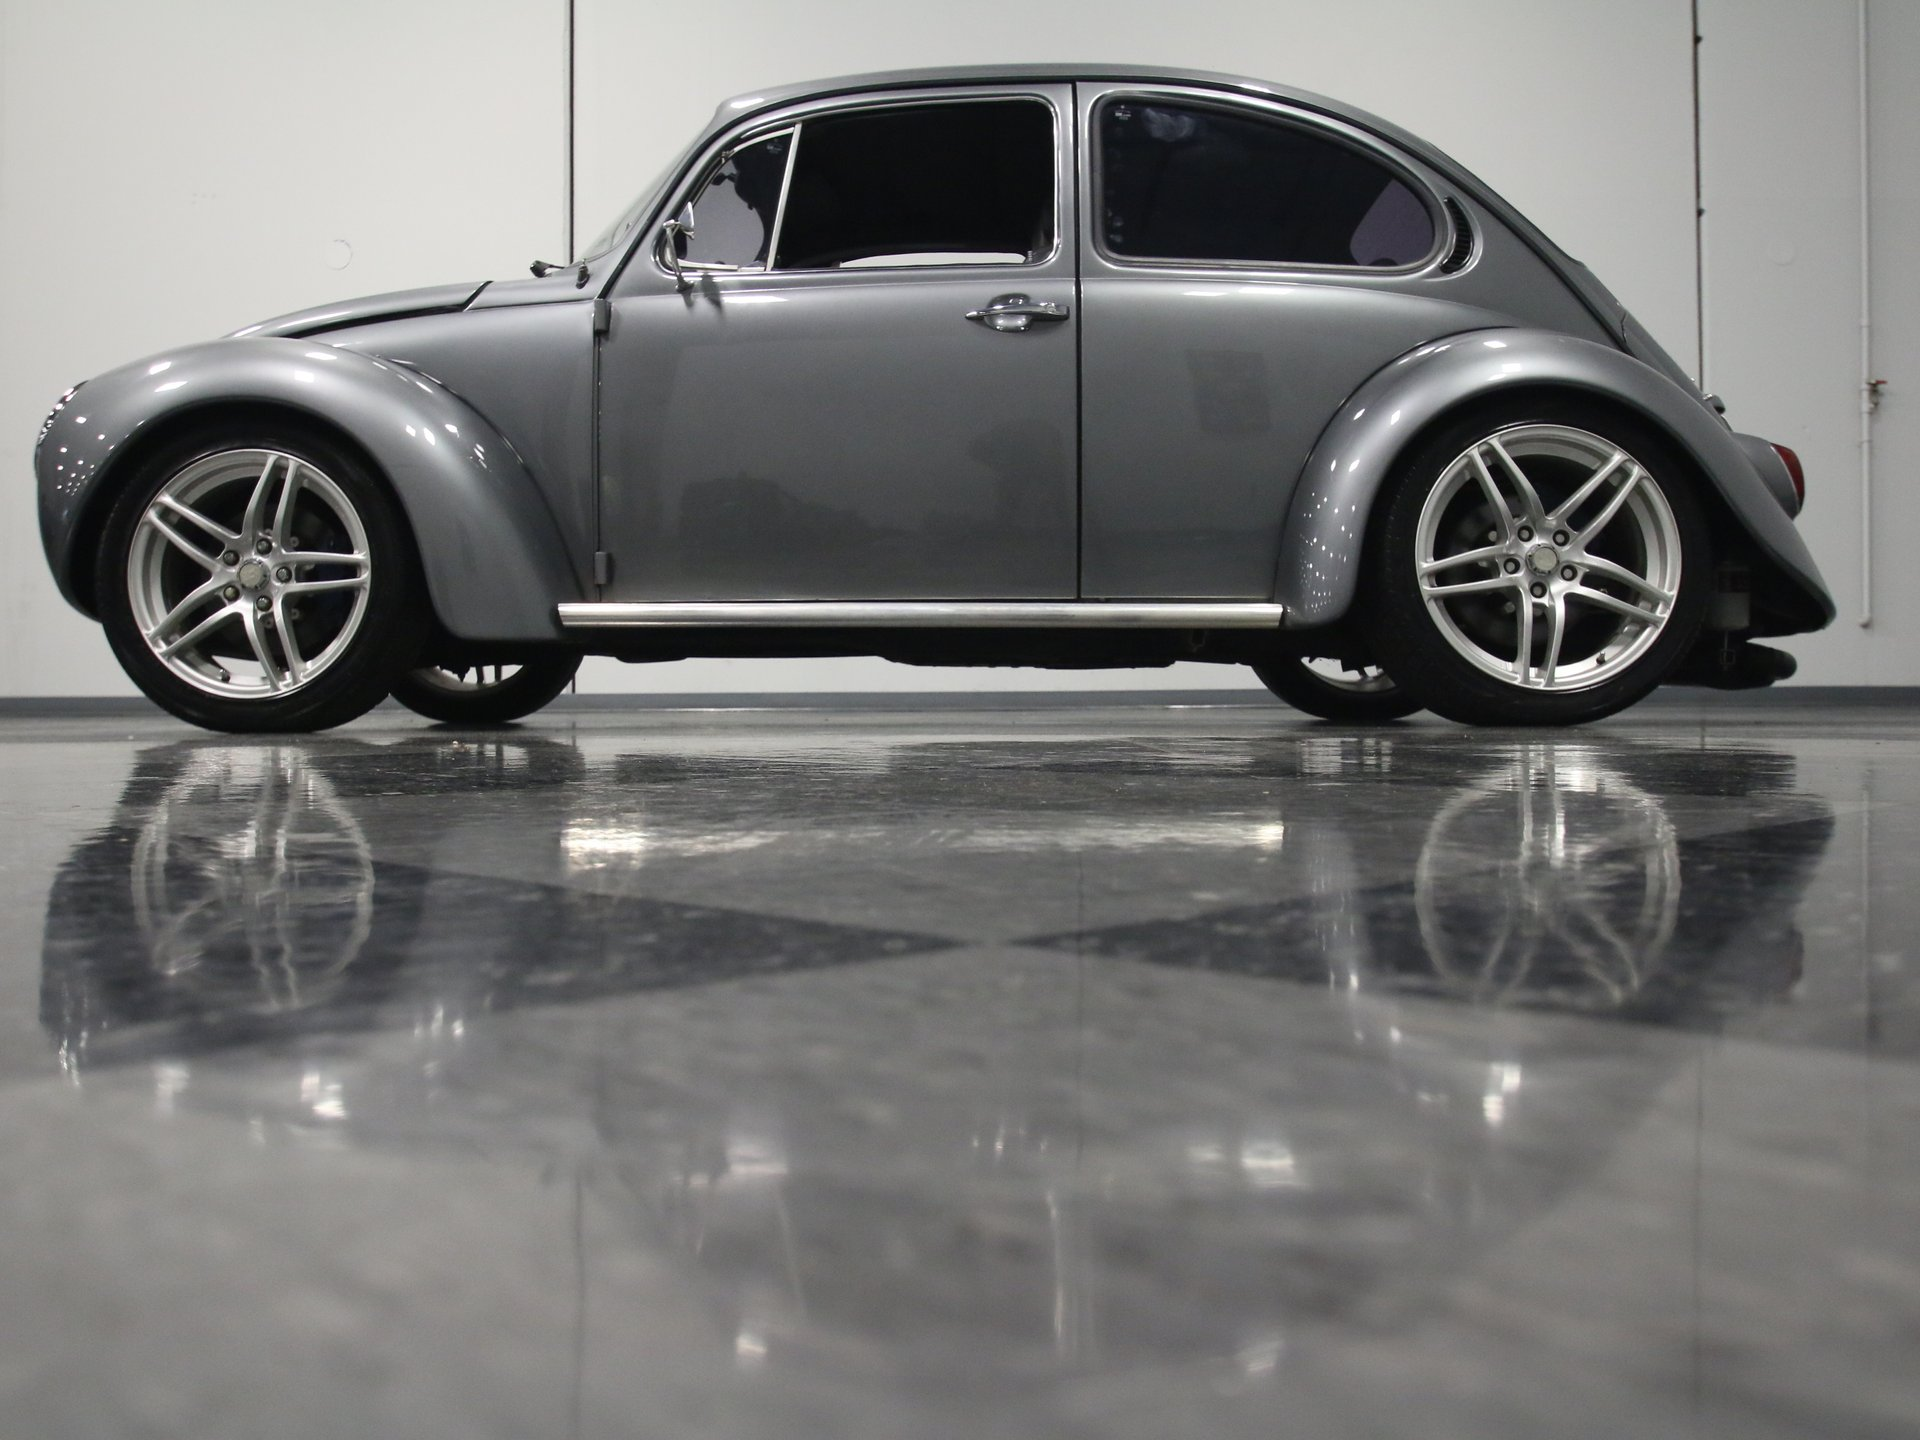 1973 Volkswagen Super Beetle Classic Cars For Sale Streetside Classics The Nation S 1 Consignment Dealer